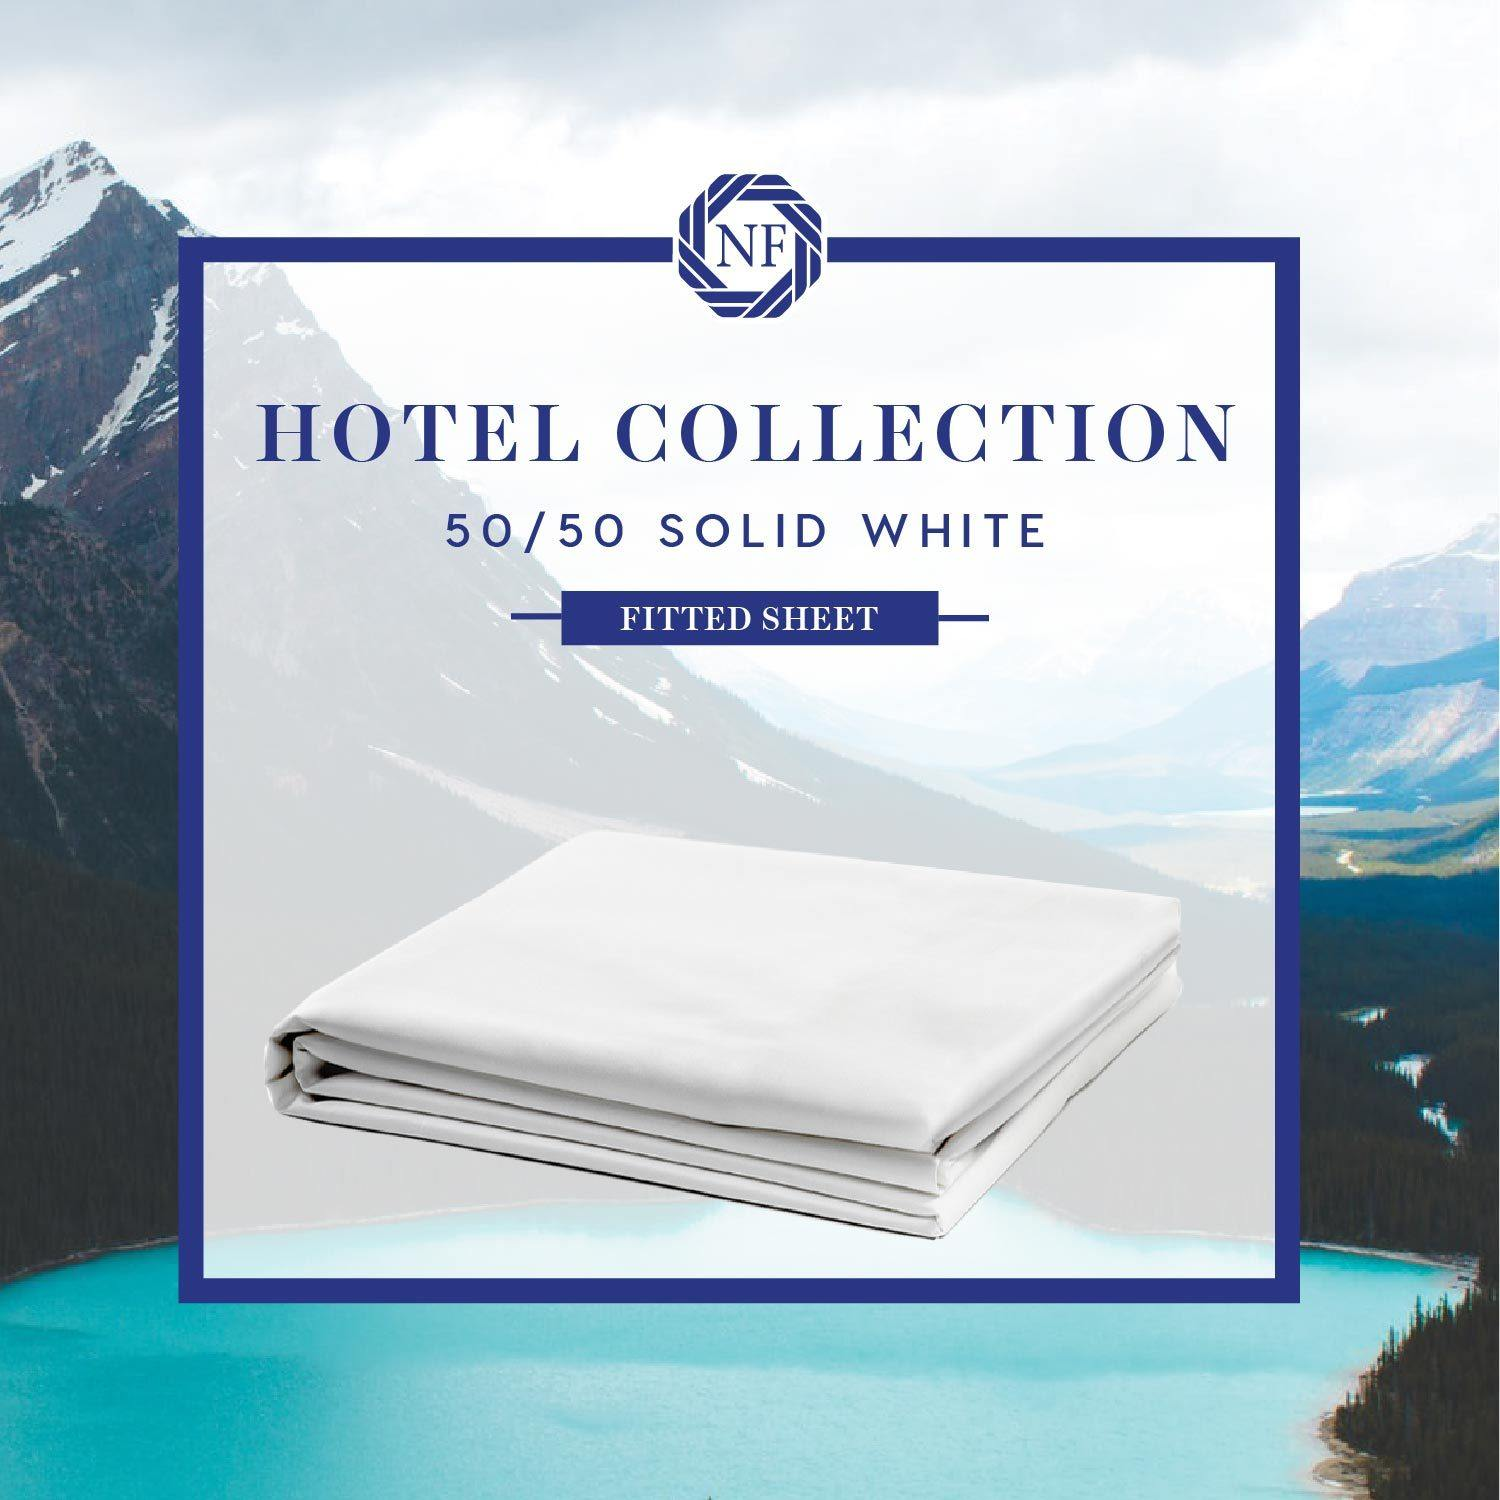 Hotel Collection - 50/50 Solid White Linen